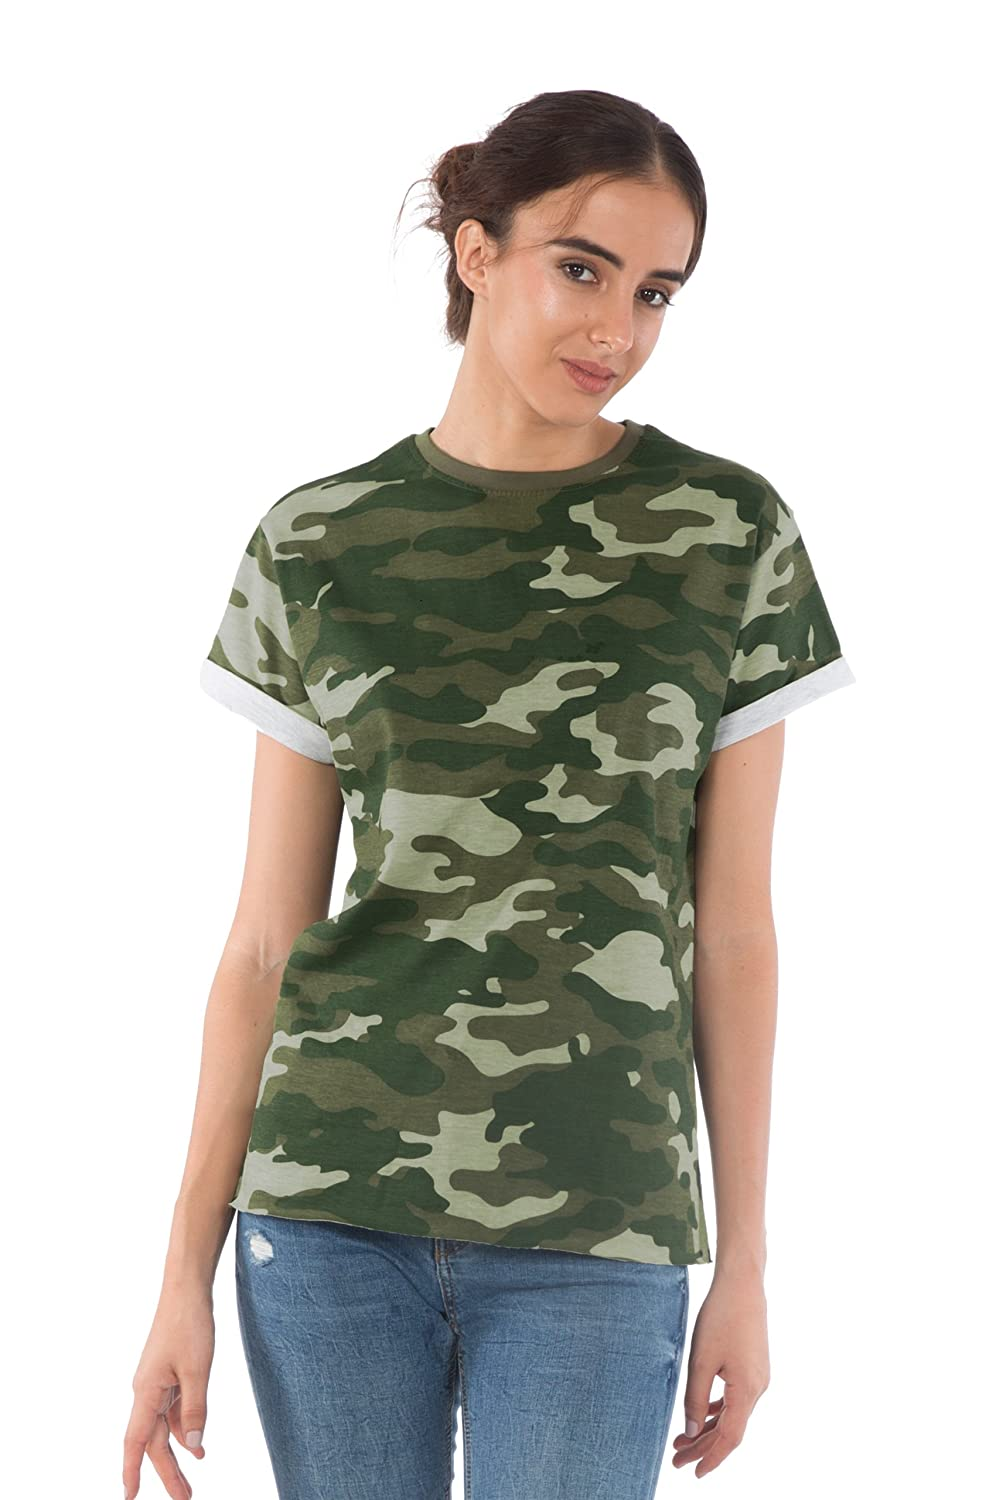 40aa86d46 Fabric - Women\'s boyfriend tshirts are made of 100% Cotton, SIngle Jersey  that is pre-washed to impart a softer texture.Airy and perspire-friendly  fabric ...